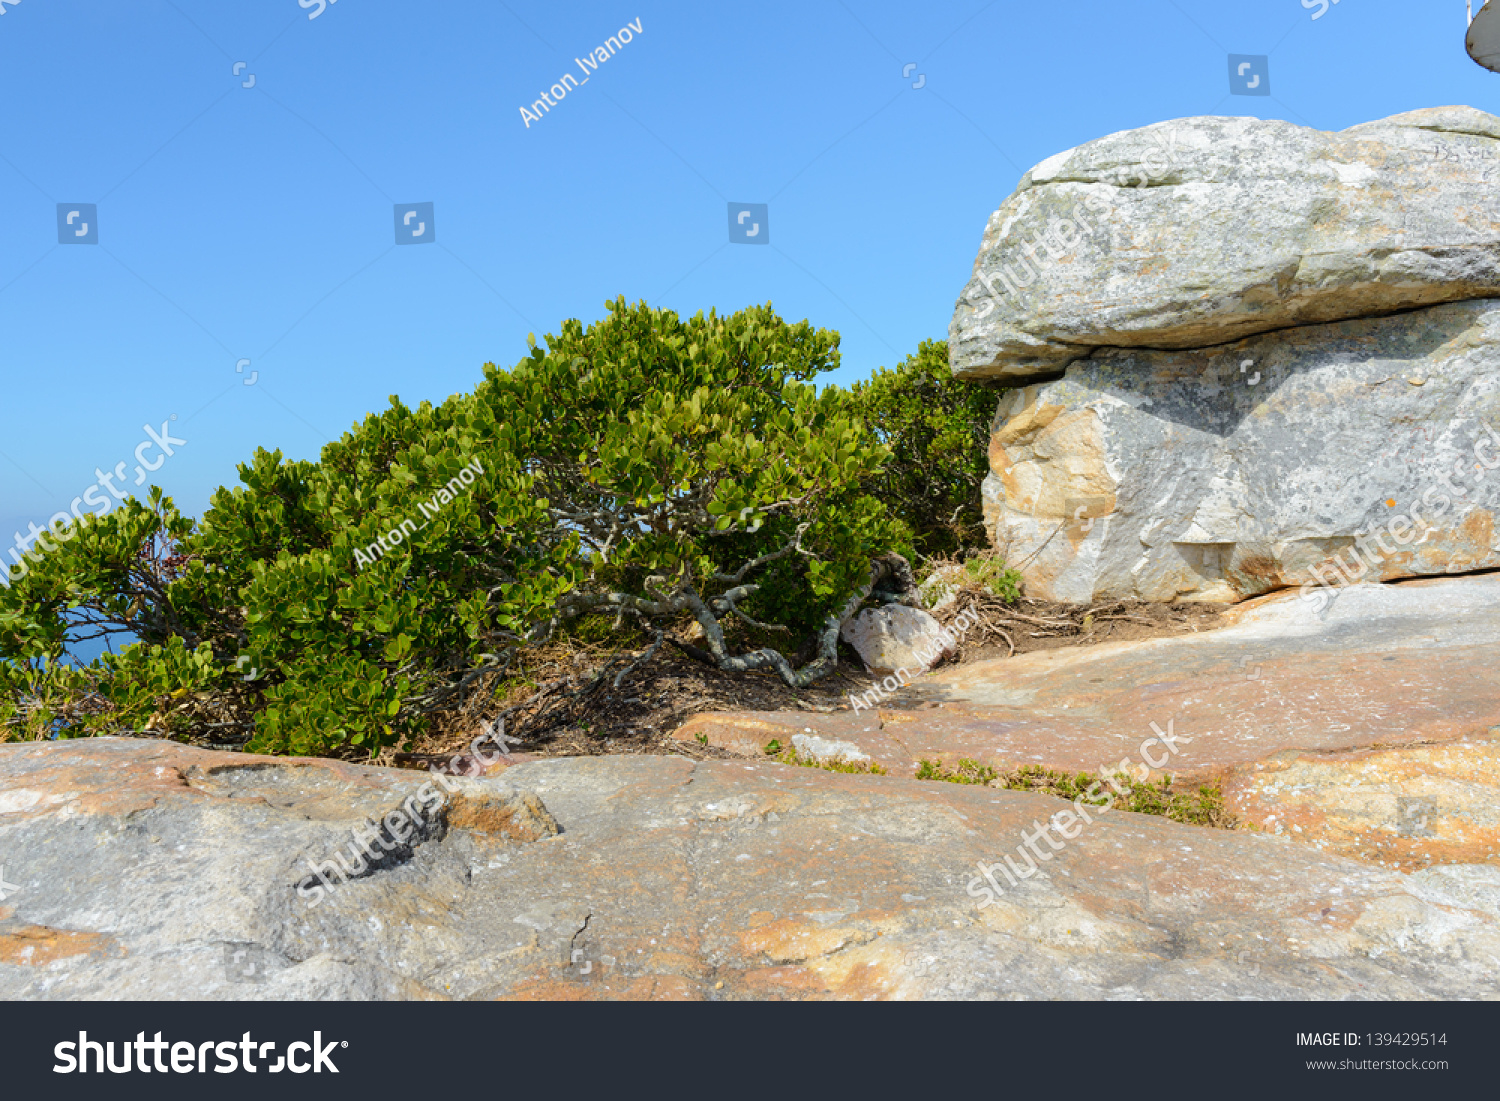 Rock In South Africa Stock Photo 139429514 : Shutterstock